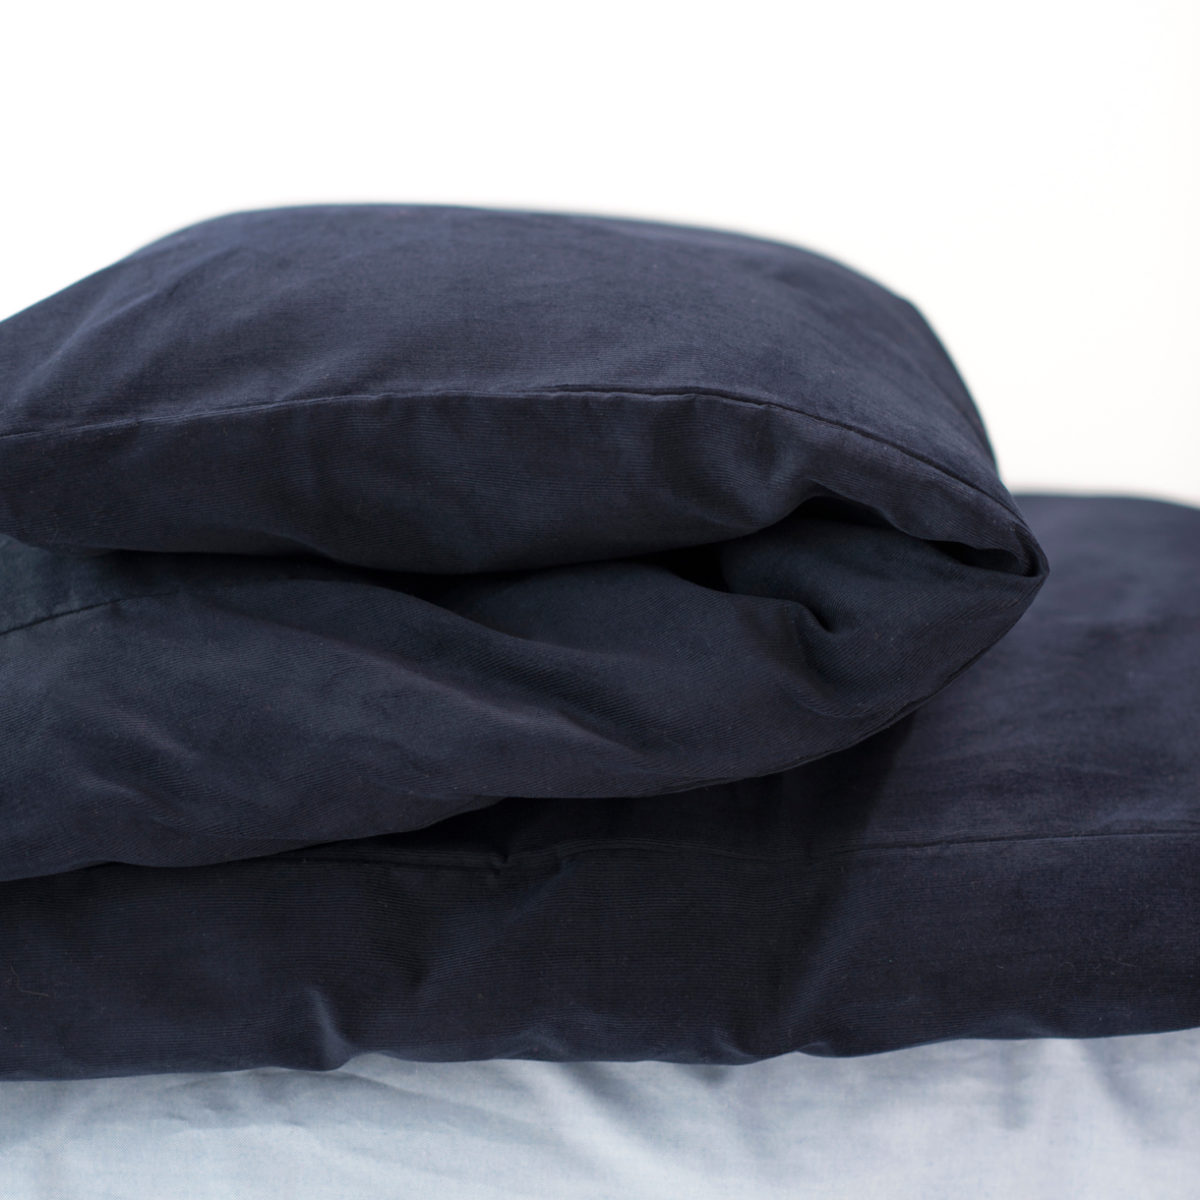 Charlie's Original Duvet Cover Navy Blue dorm room bedding